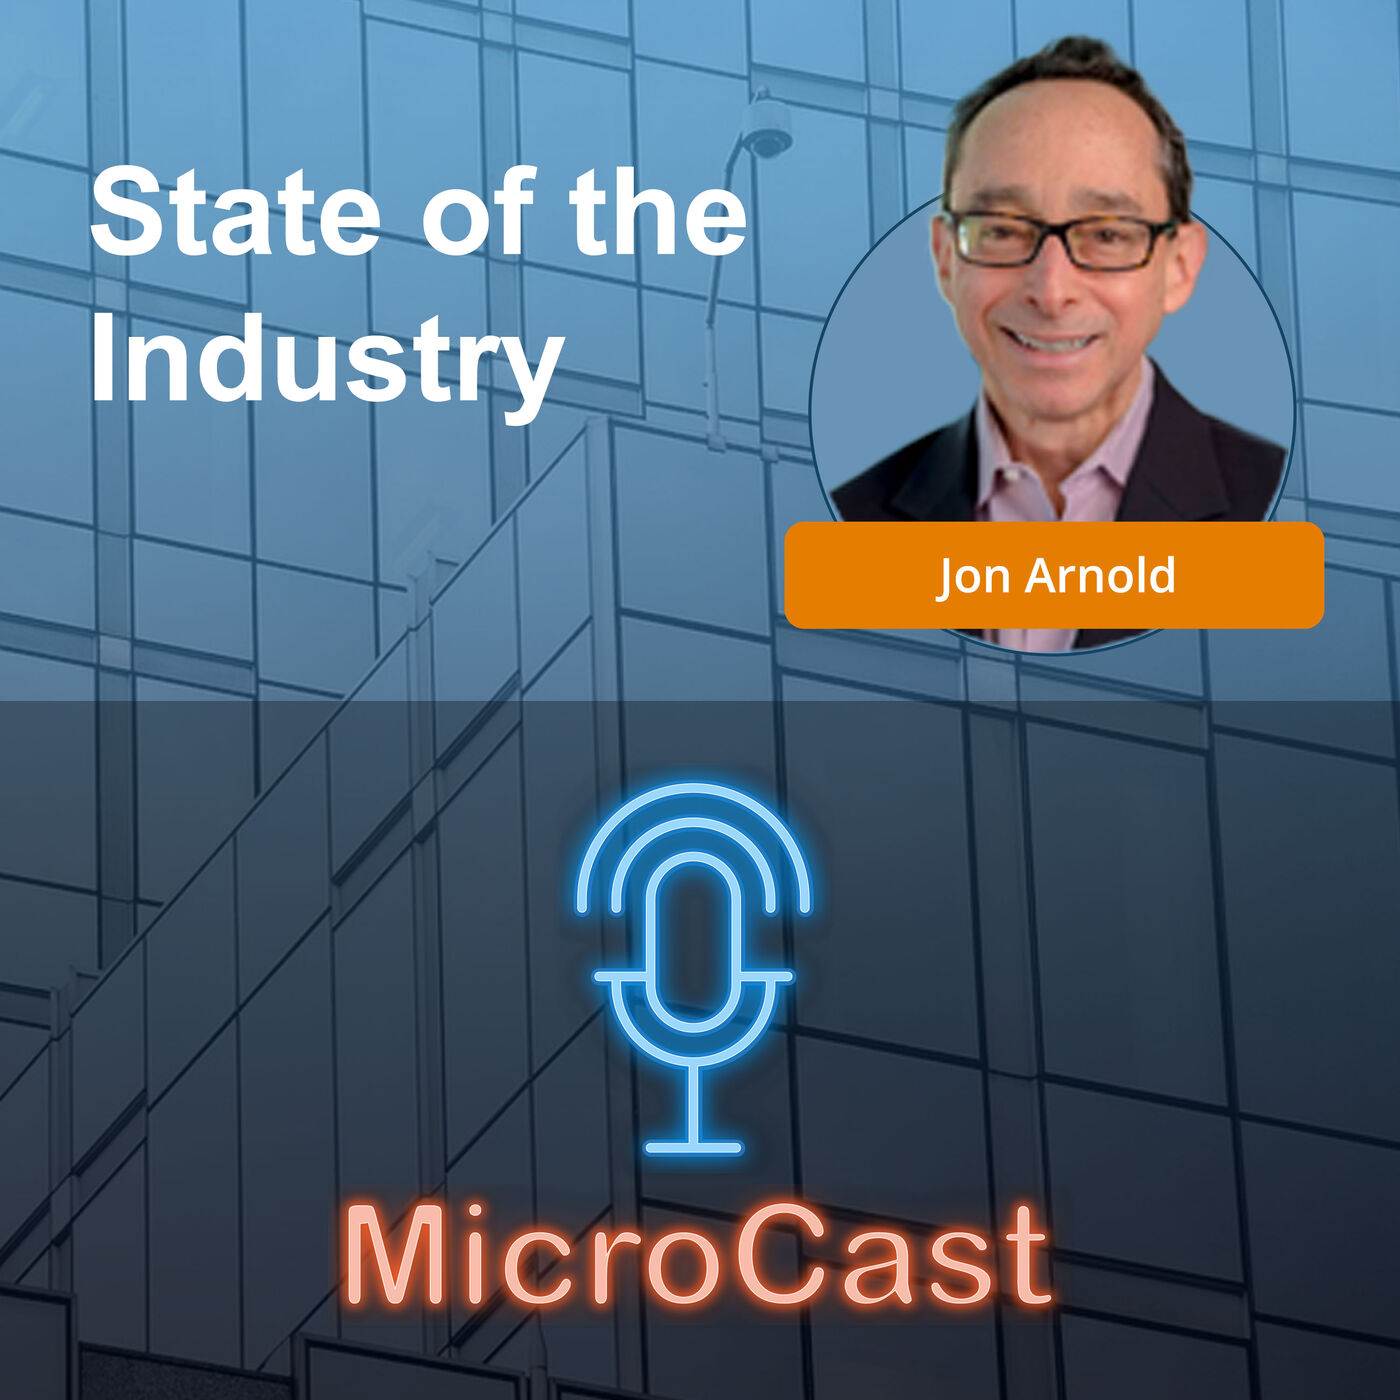 Episode 42 - State of the Industry with Jon Arnold, Industry Analyst